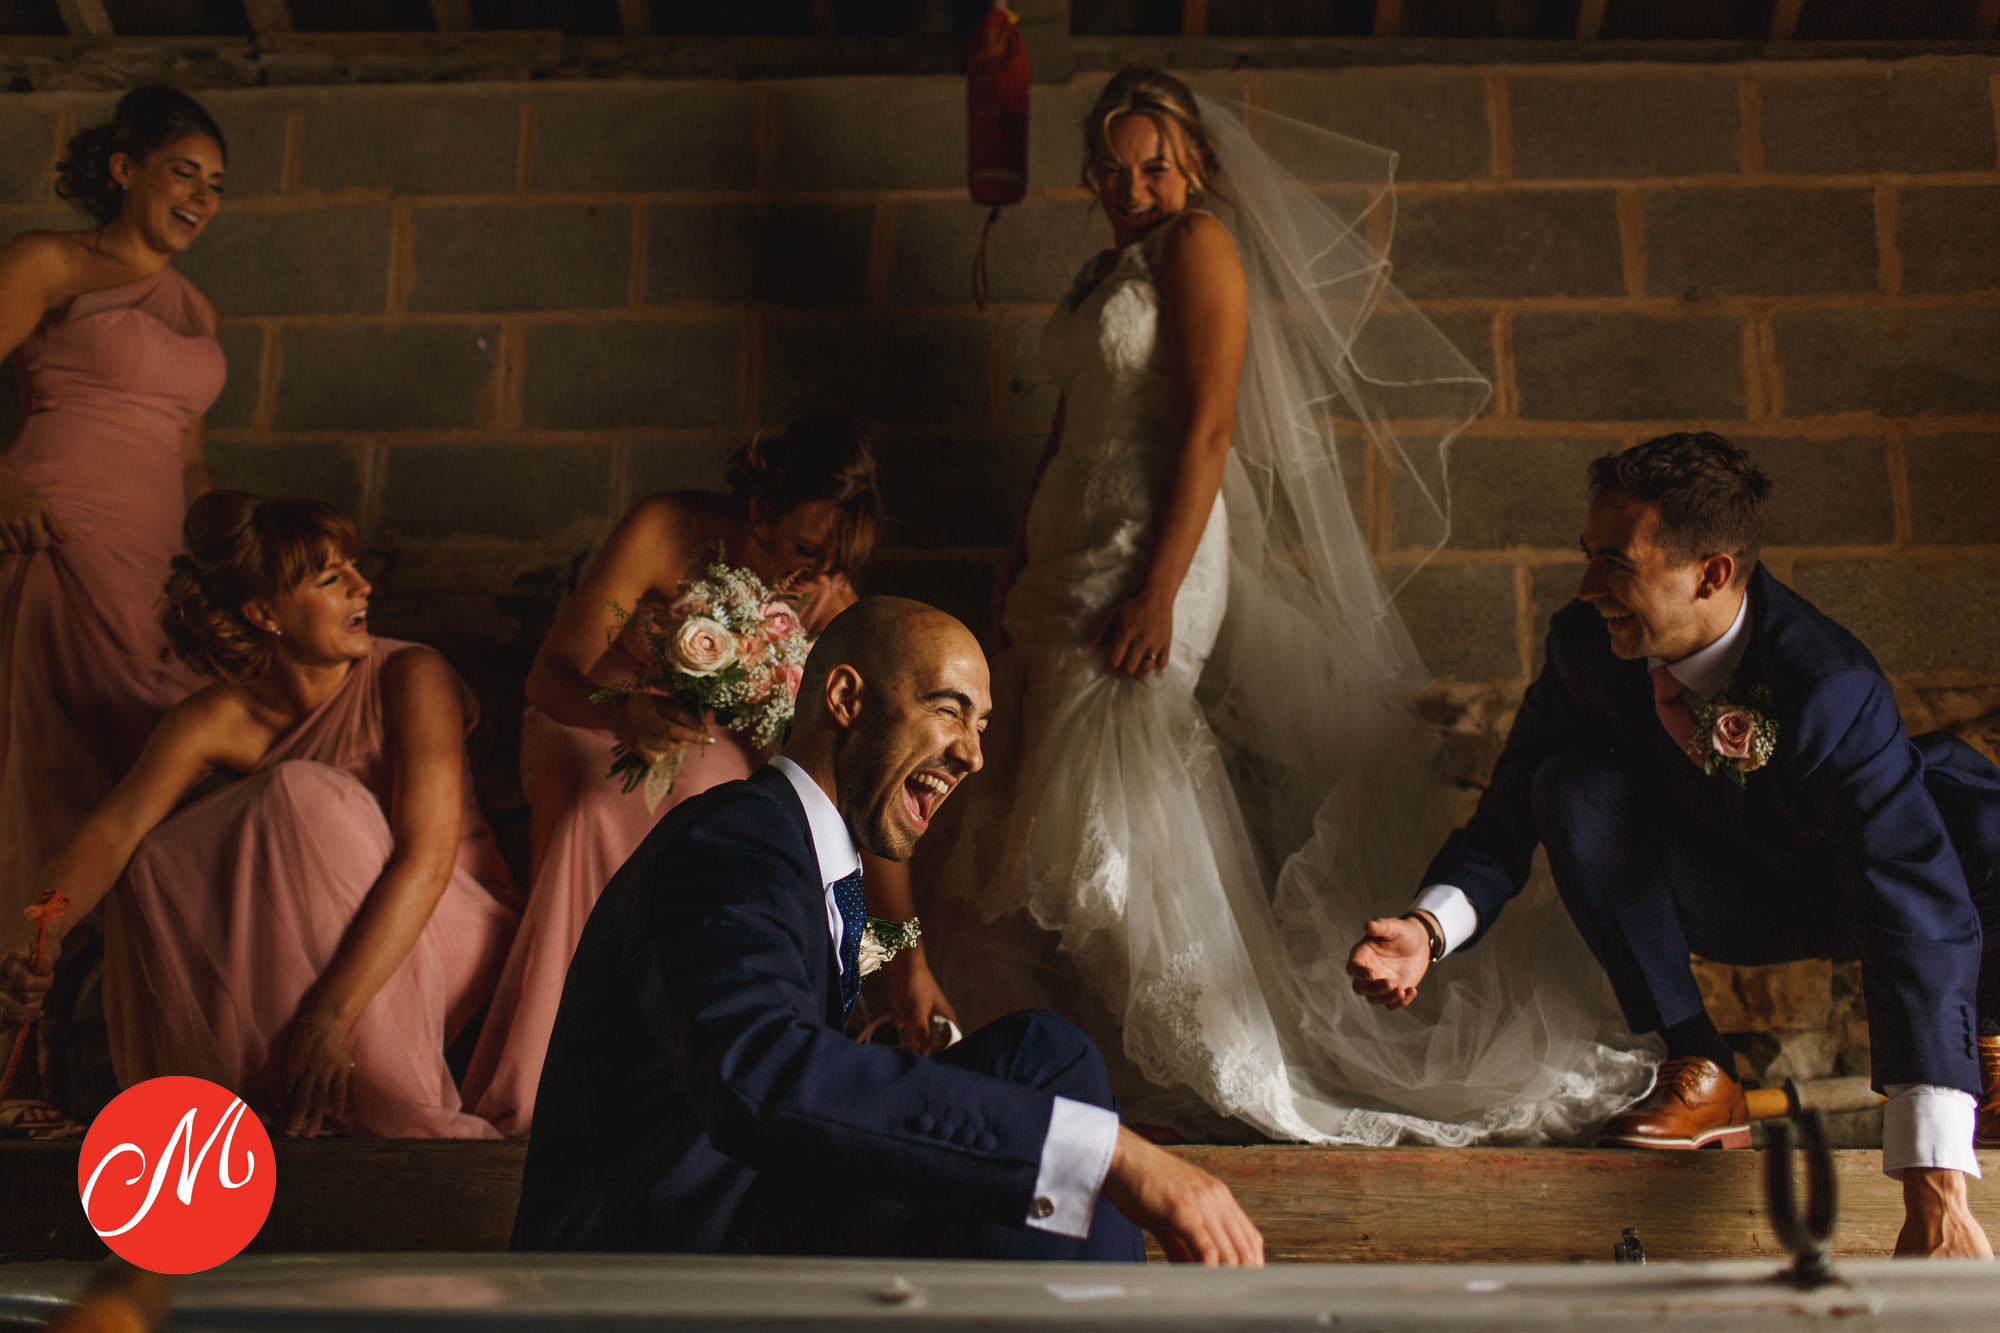 Award winning photographer - Masters of Wedding Photography